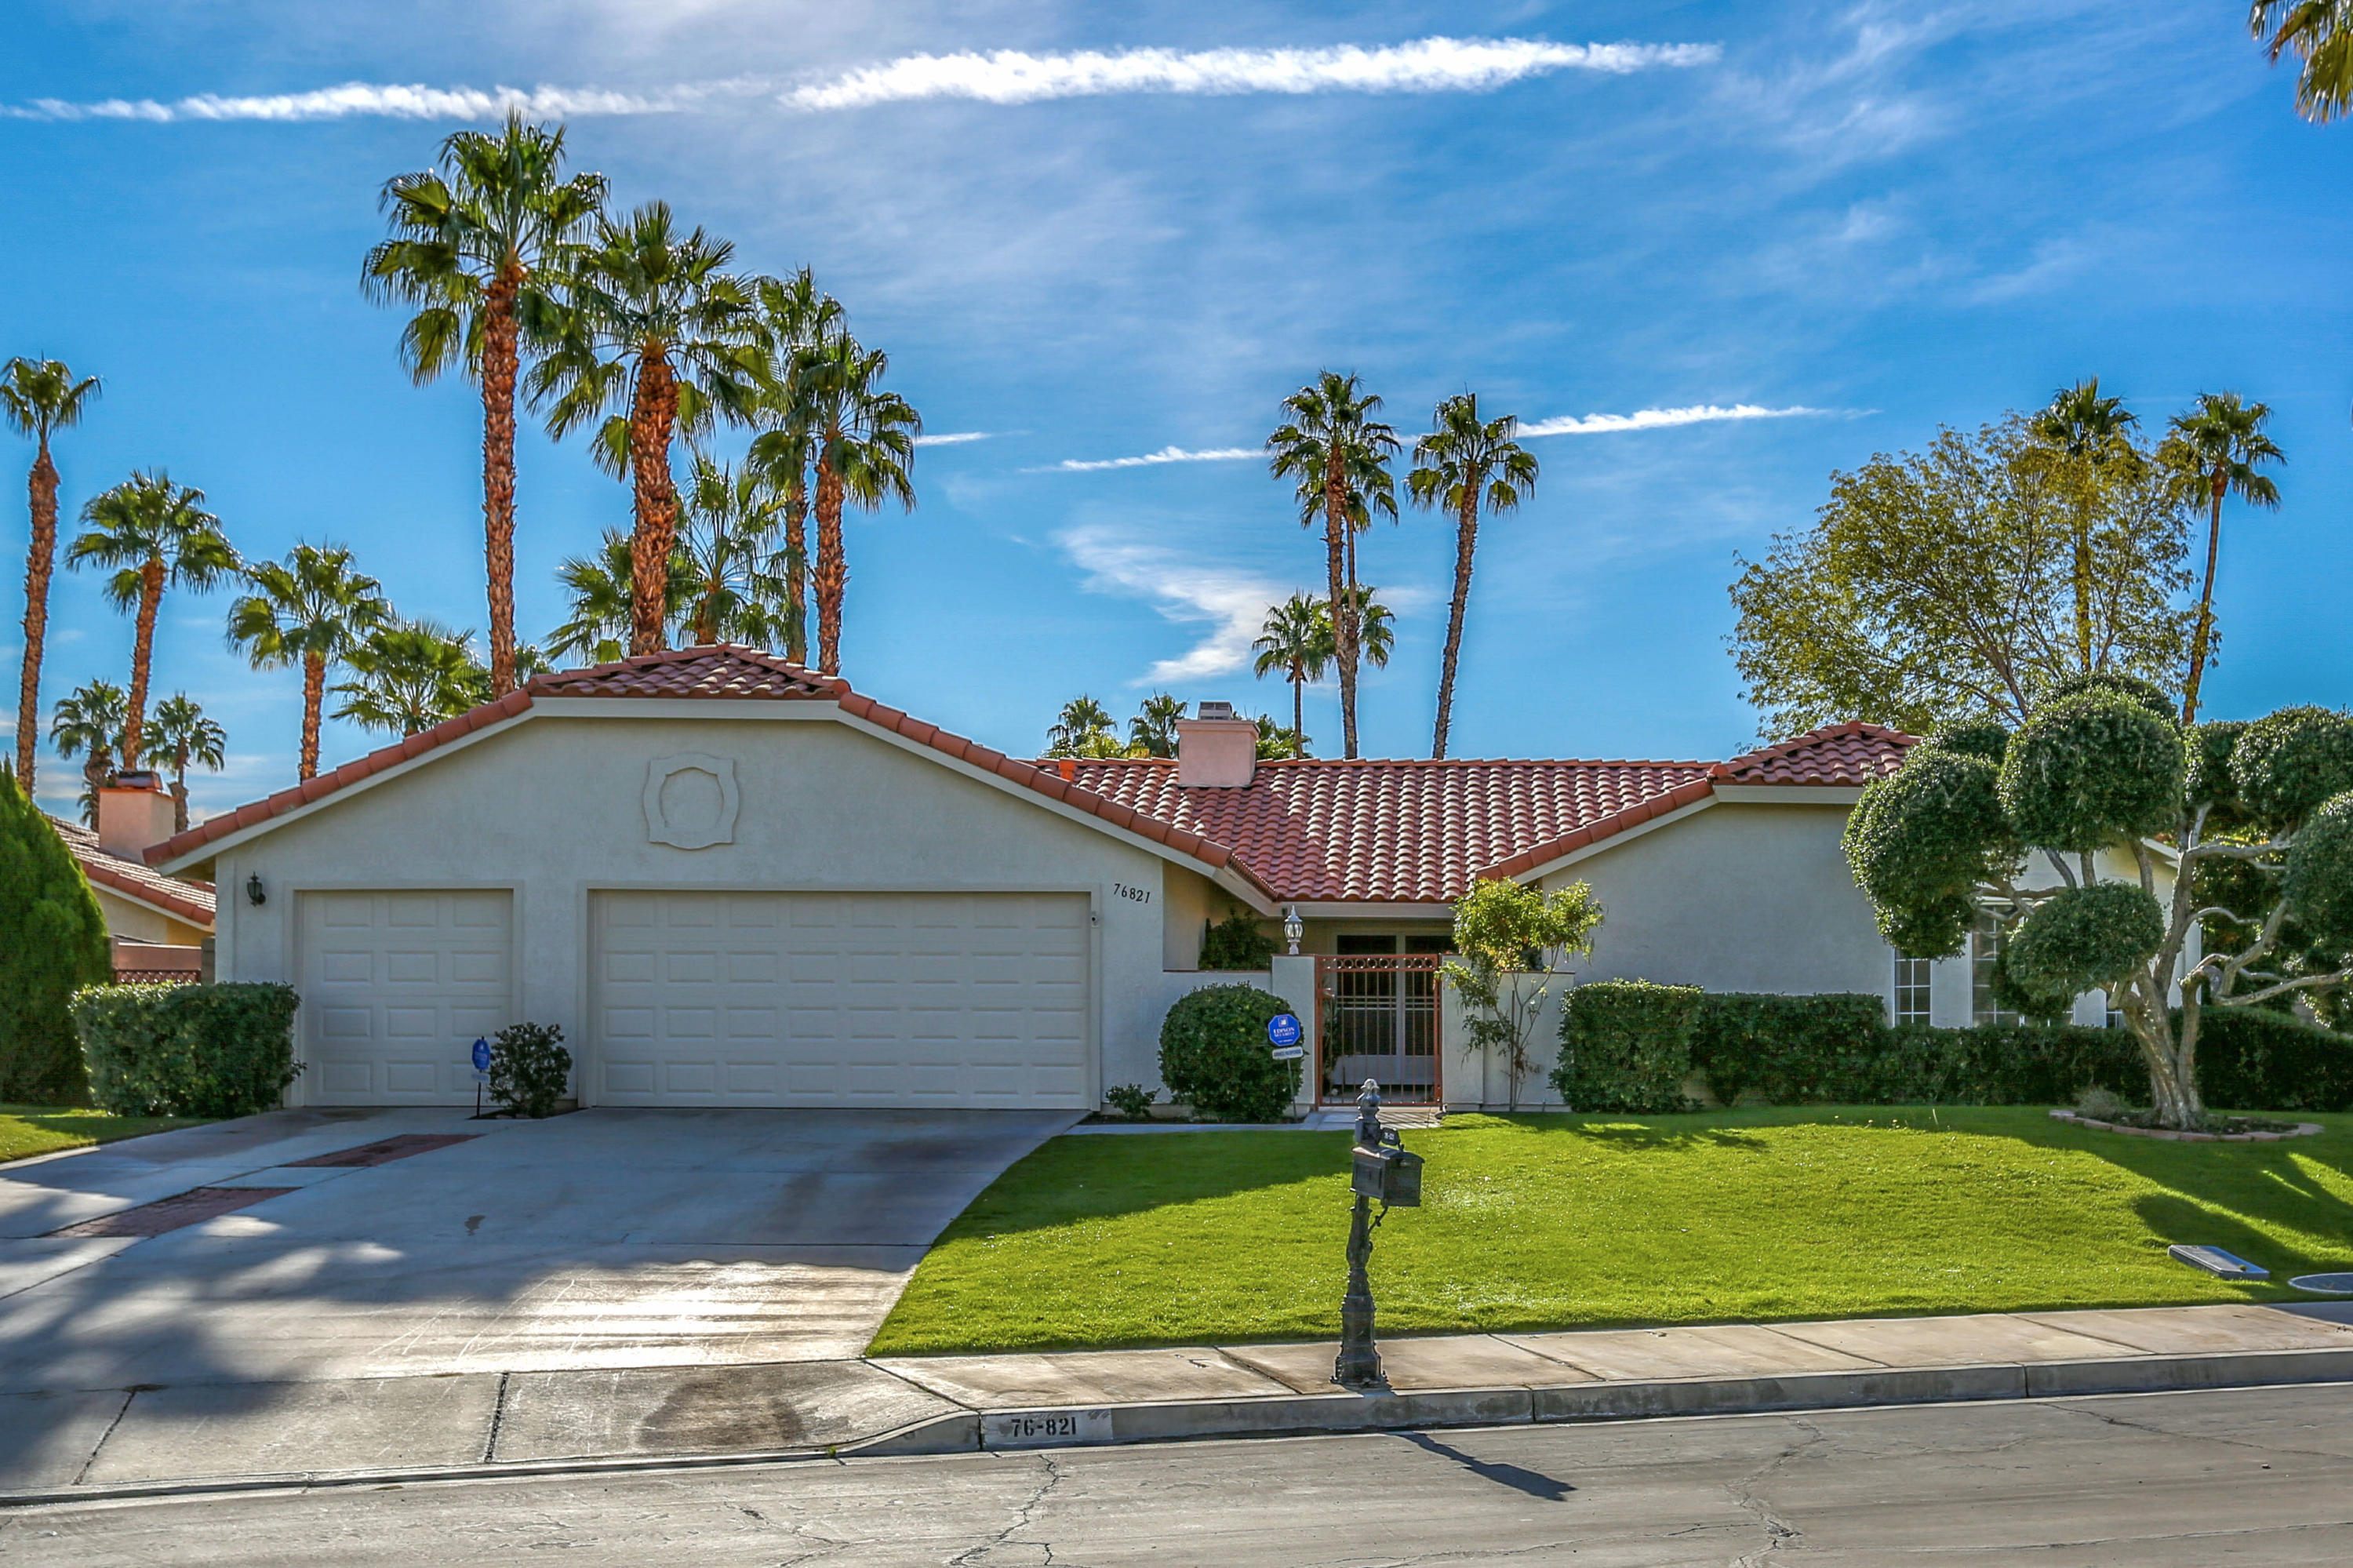 76821 Ascot Circle, Palm Desert, California 92211, 3 Bedrooms Bedrooms, ,3 BathroomsBathrooms,Residential,For Sale,76821 Ascot Circle,219035309